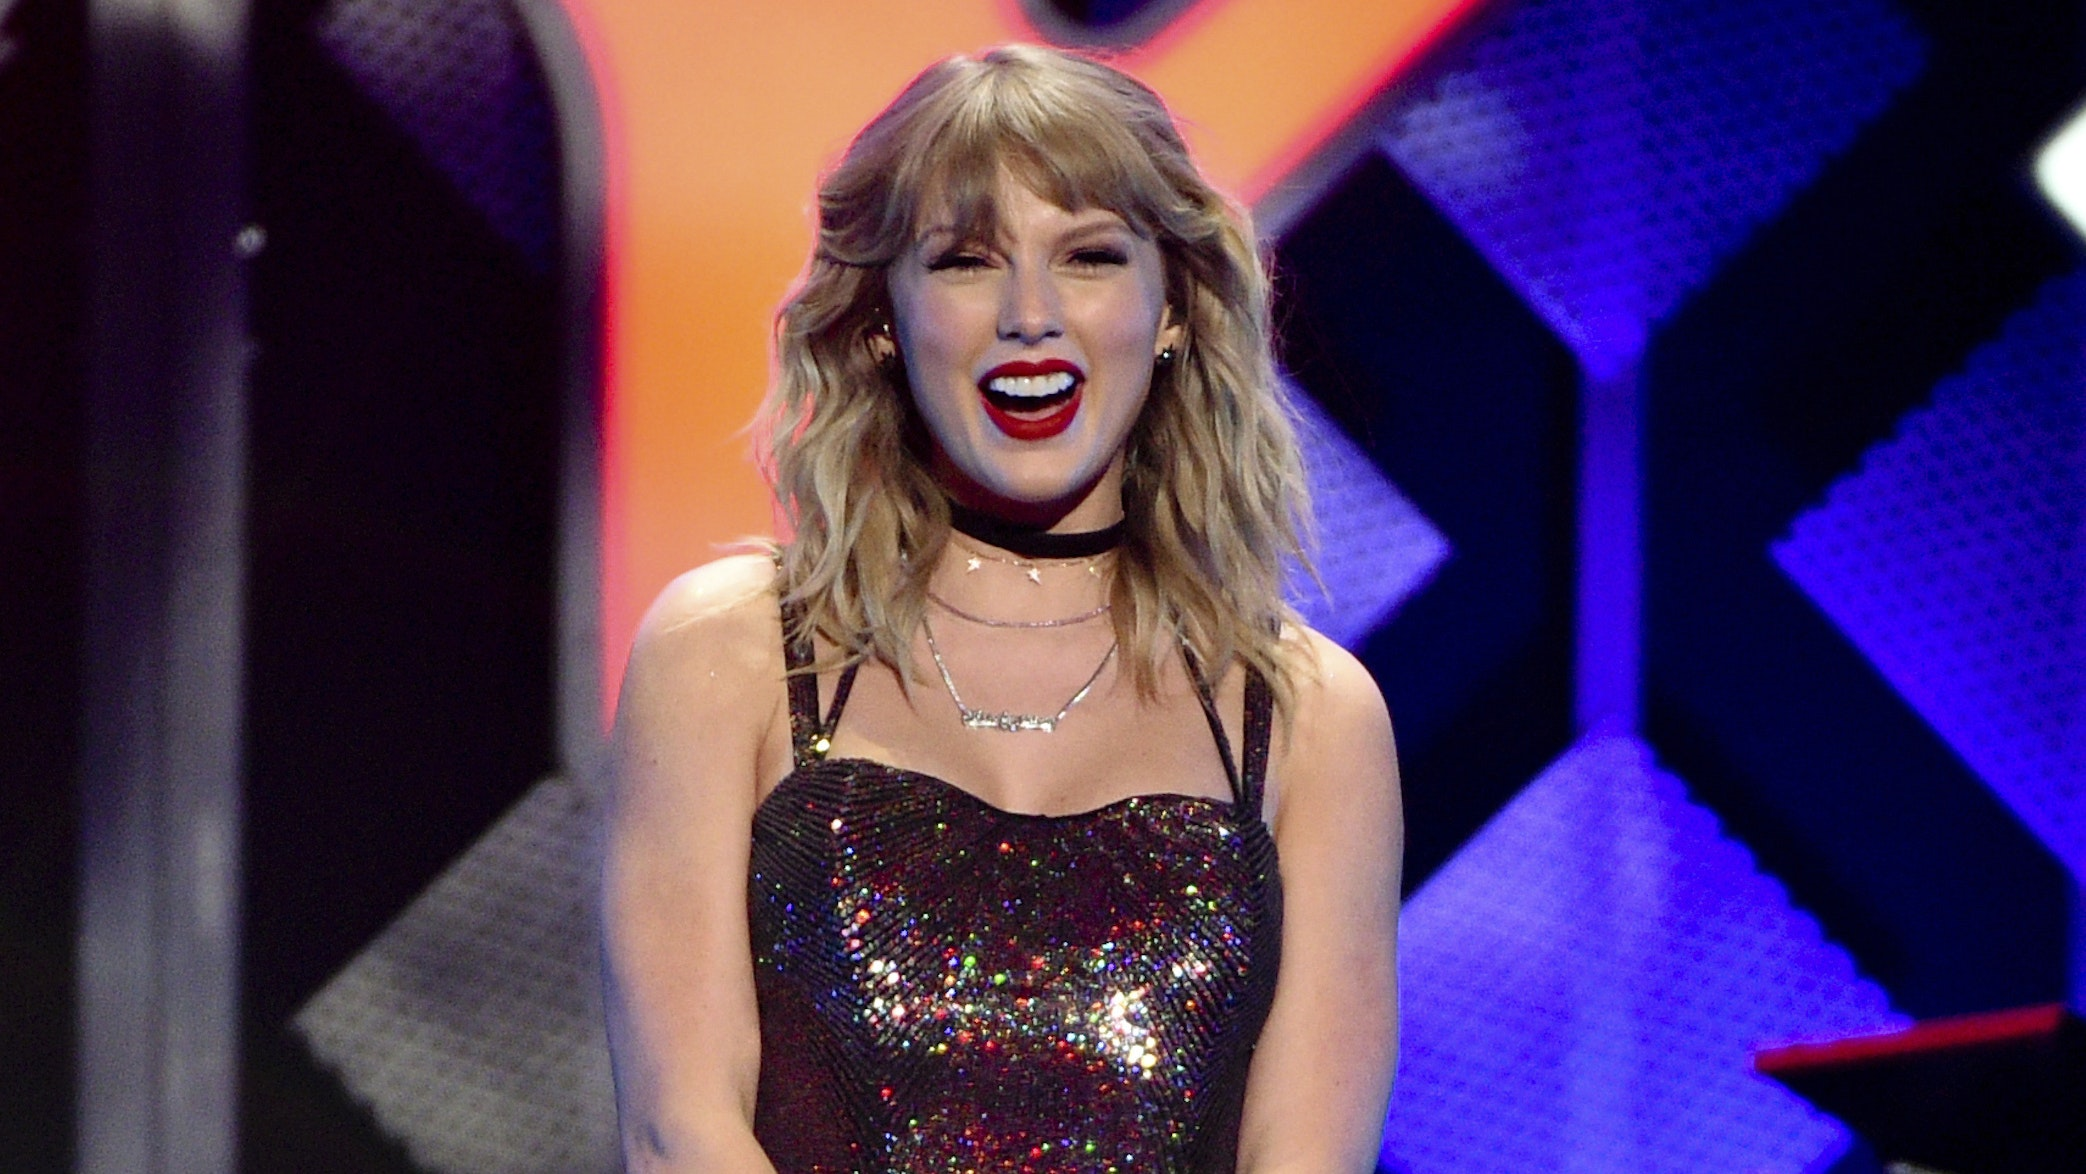 Taylor Swift Celebrates Her 30th Birthday With New York Performance Bt